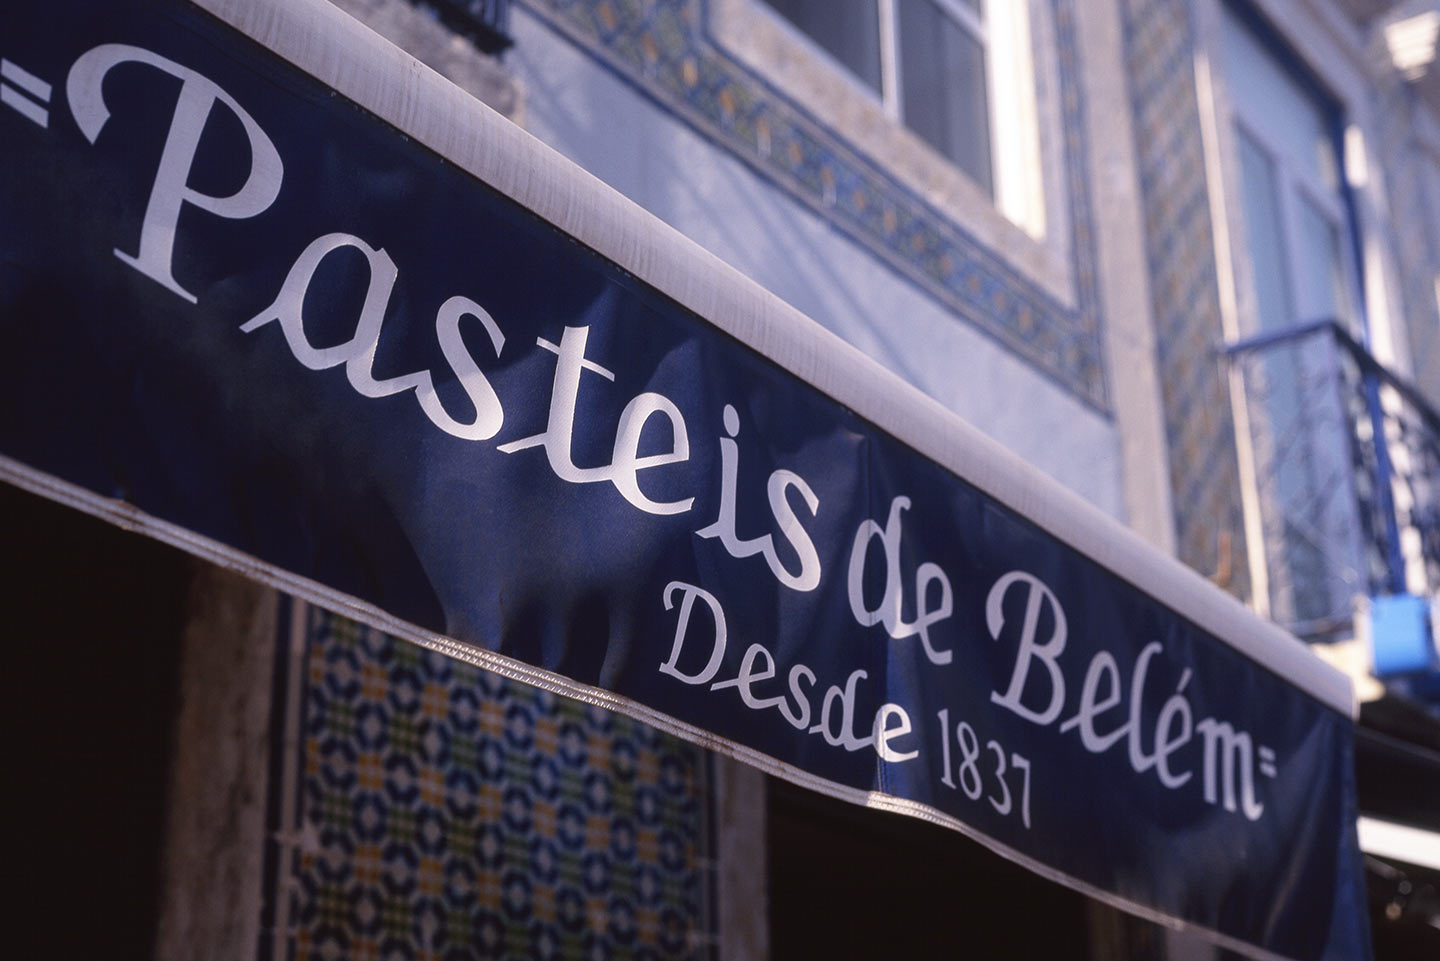 Image of the Pasteis de Belem cafe, Lisbon